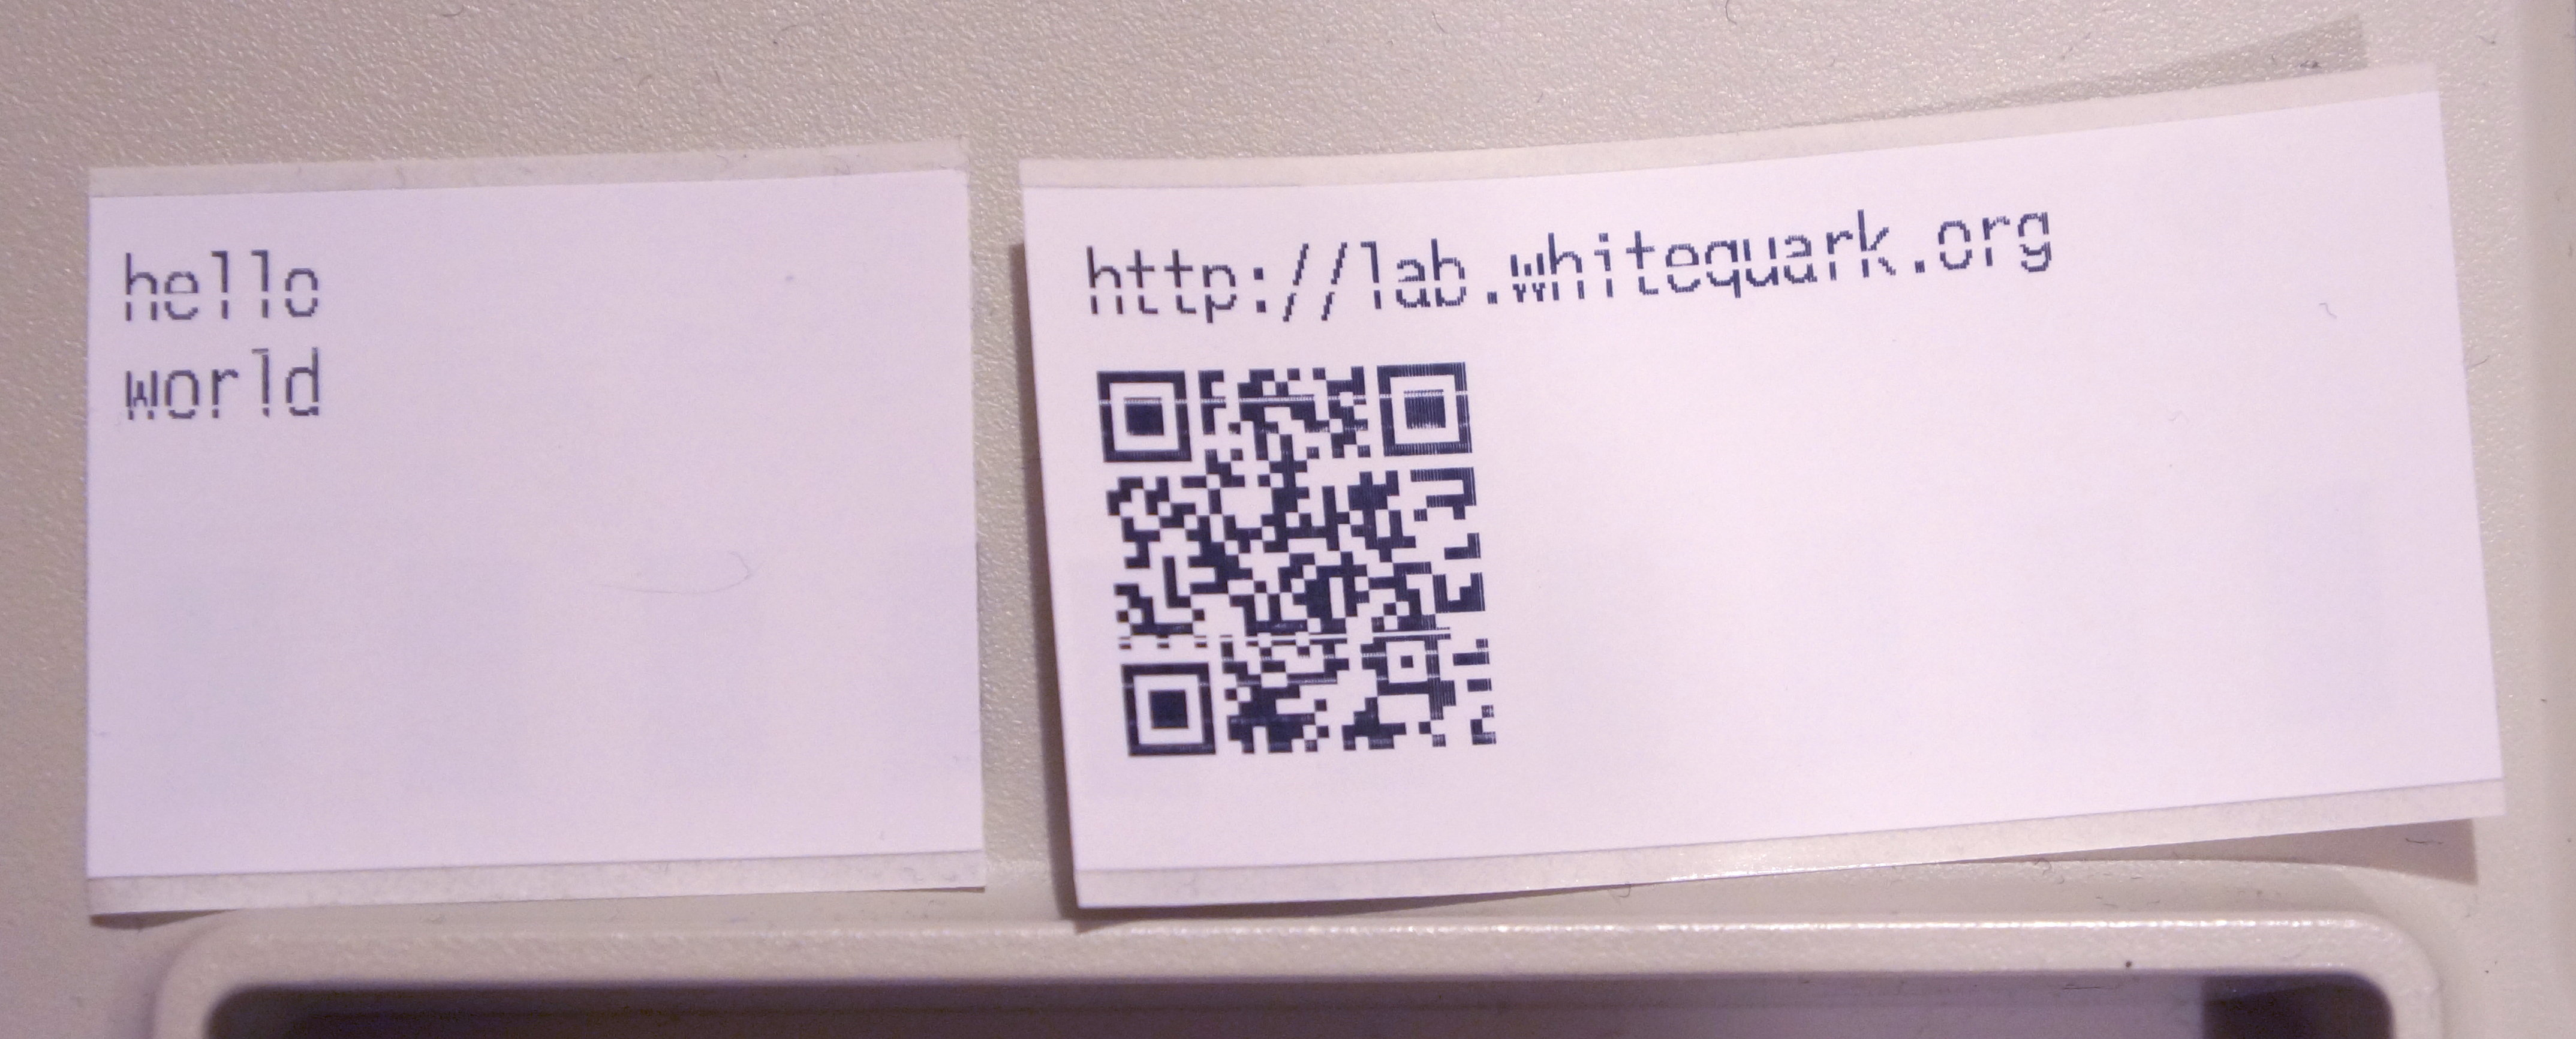 Printing labels on Epson TM-T88IV — whitequark's lab notebook